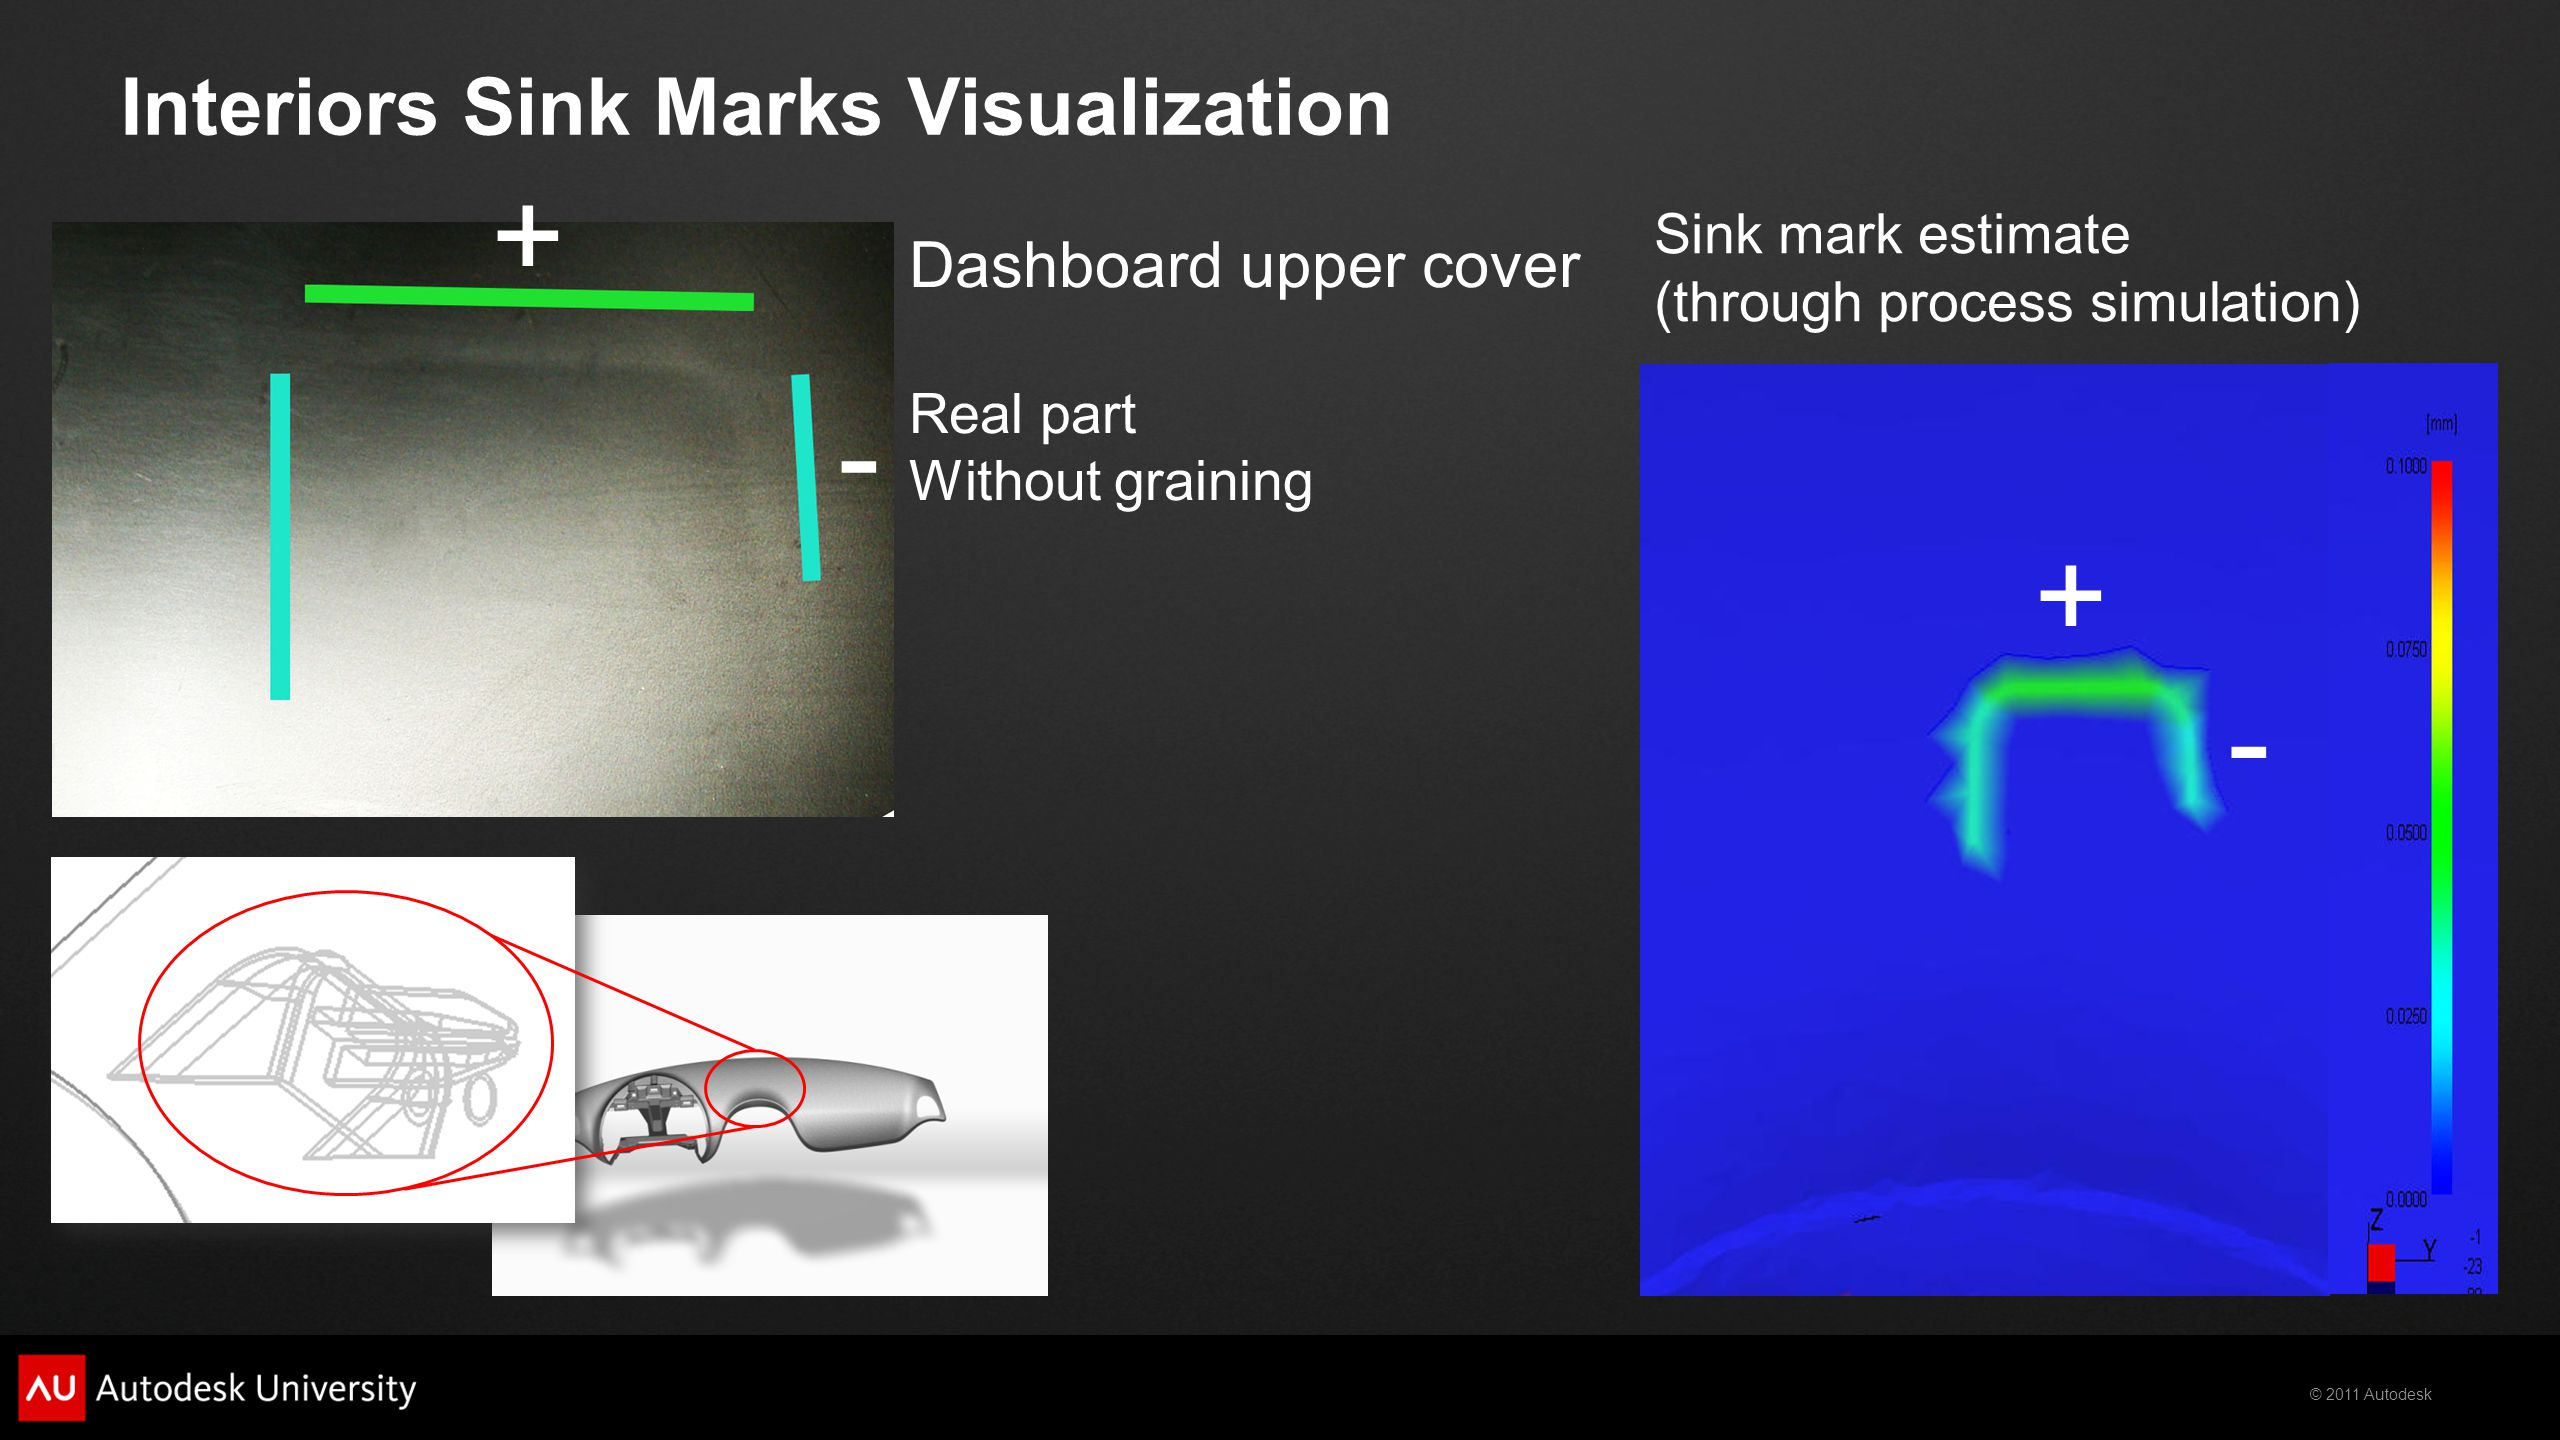 © 2011 Autodesk - + + - Sink mark estimate (through process simulation) Dashboard upper cover Real part Without graining Interiors Sink Marks Visualiz